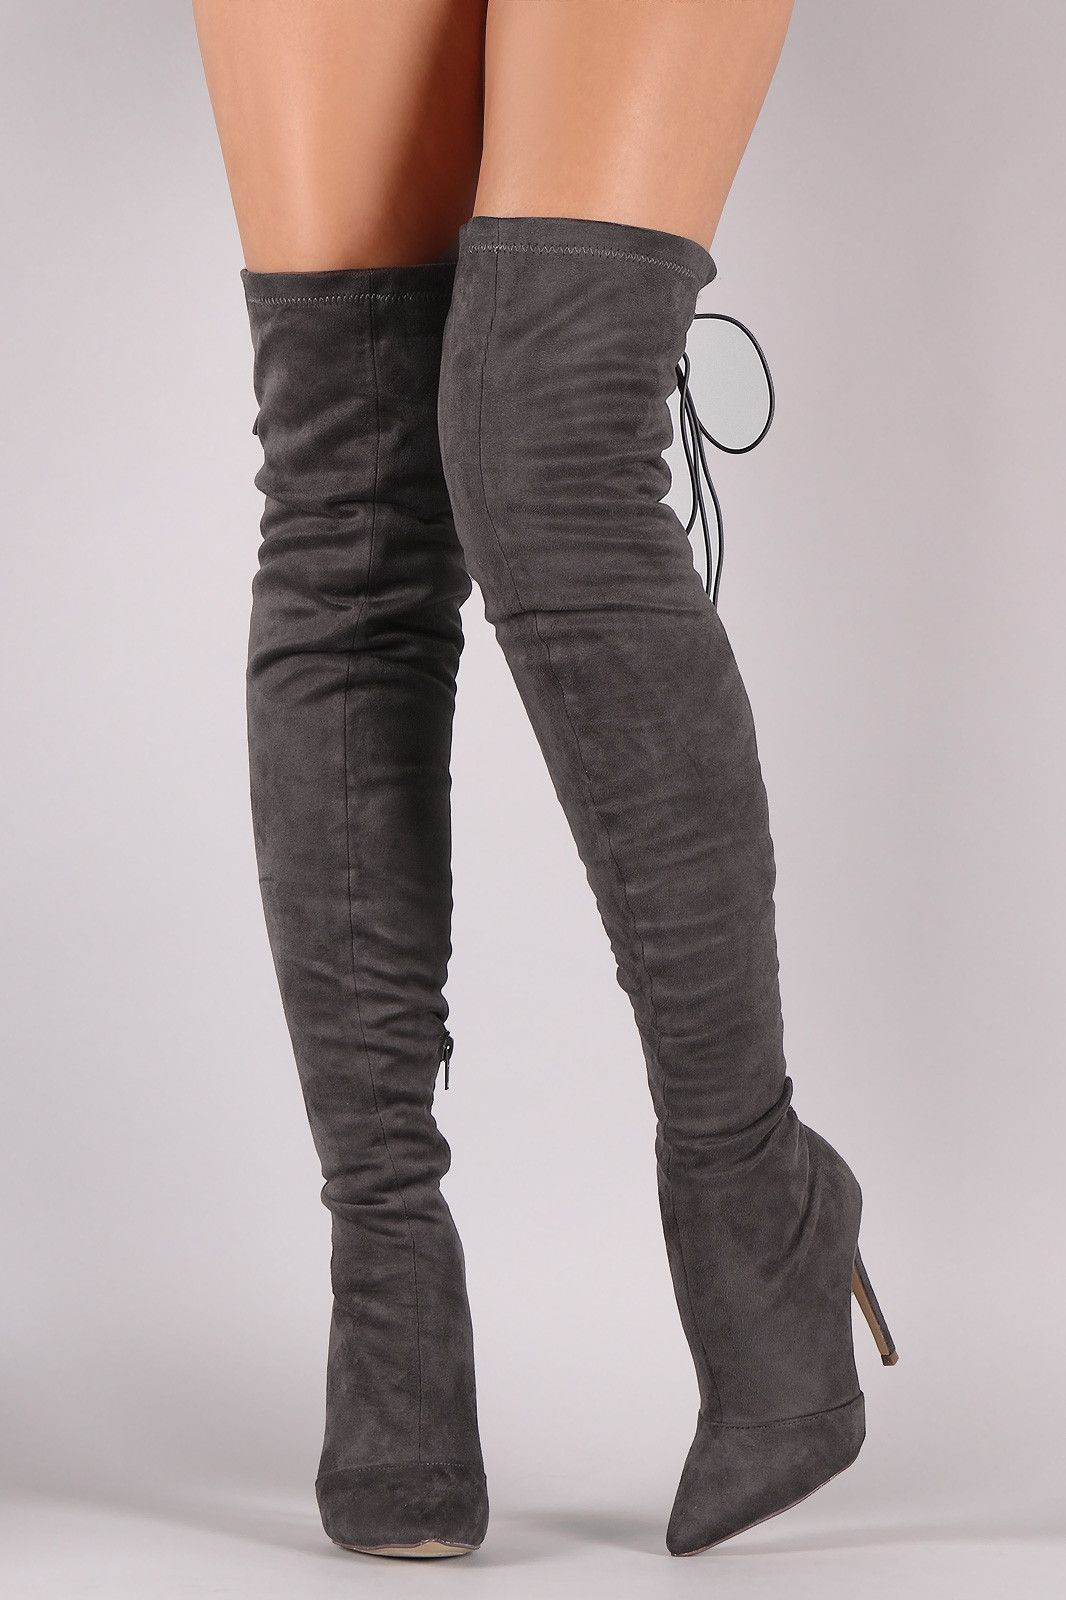 5ee255649d1 Suede Back Studded Lace Up Pointy Toe Boots | High thigh boots ...